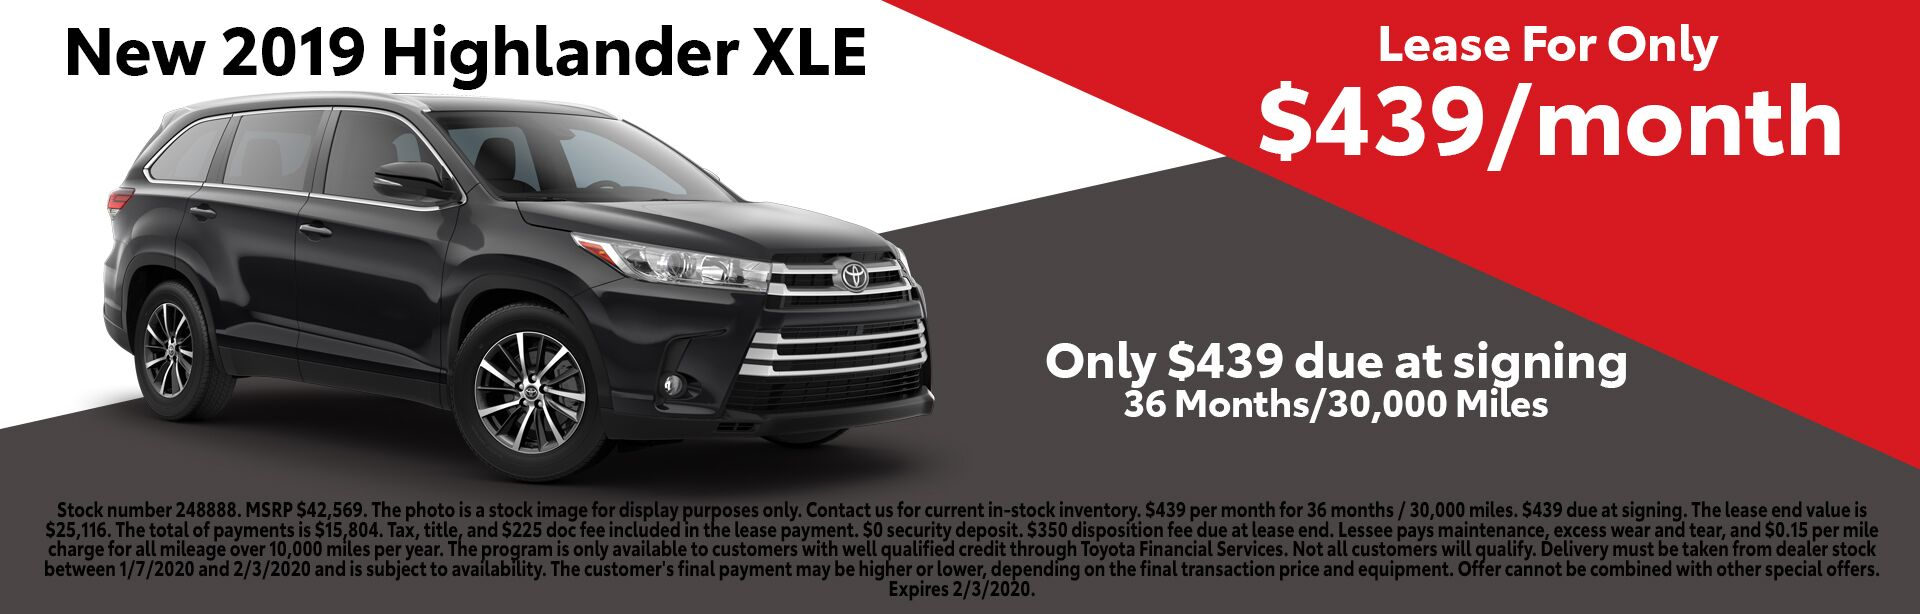 January 2020 Highlander Lease Special